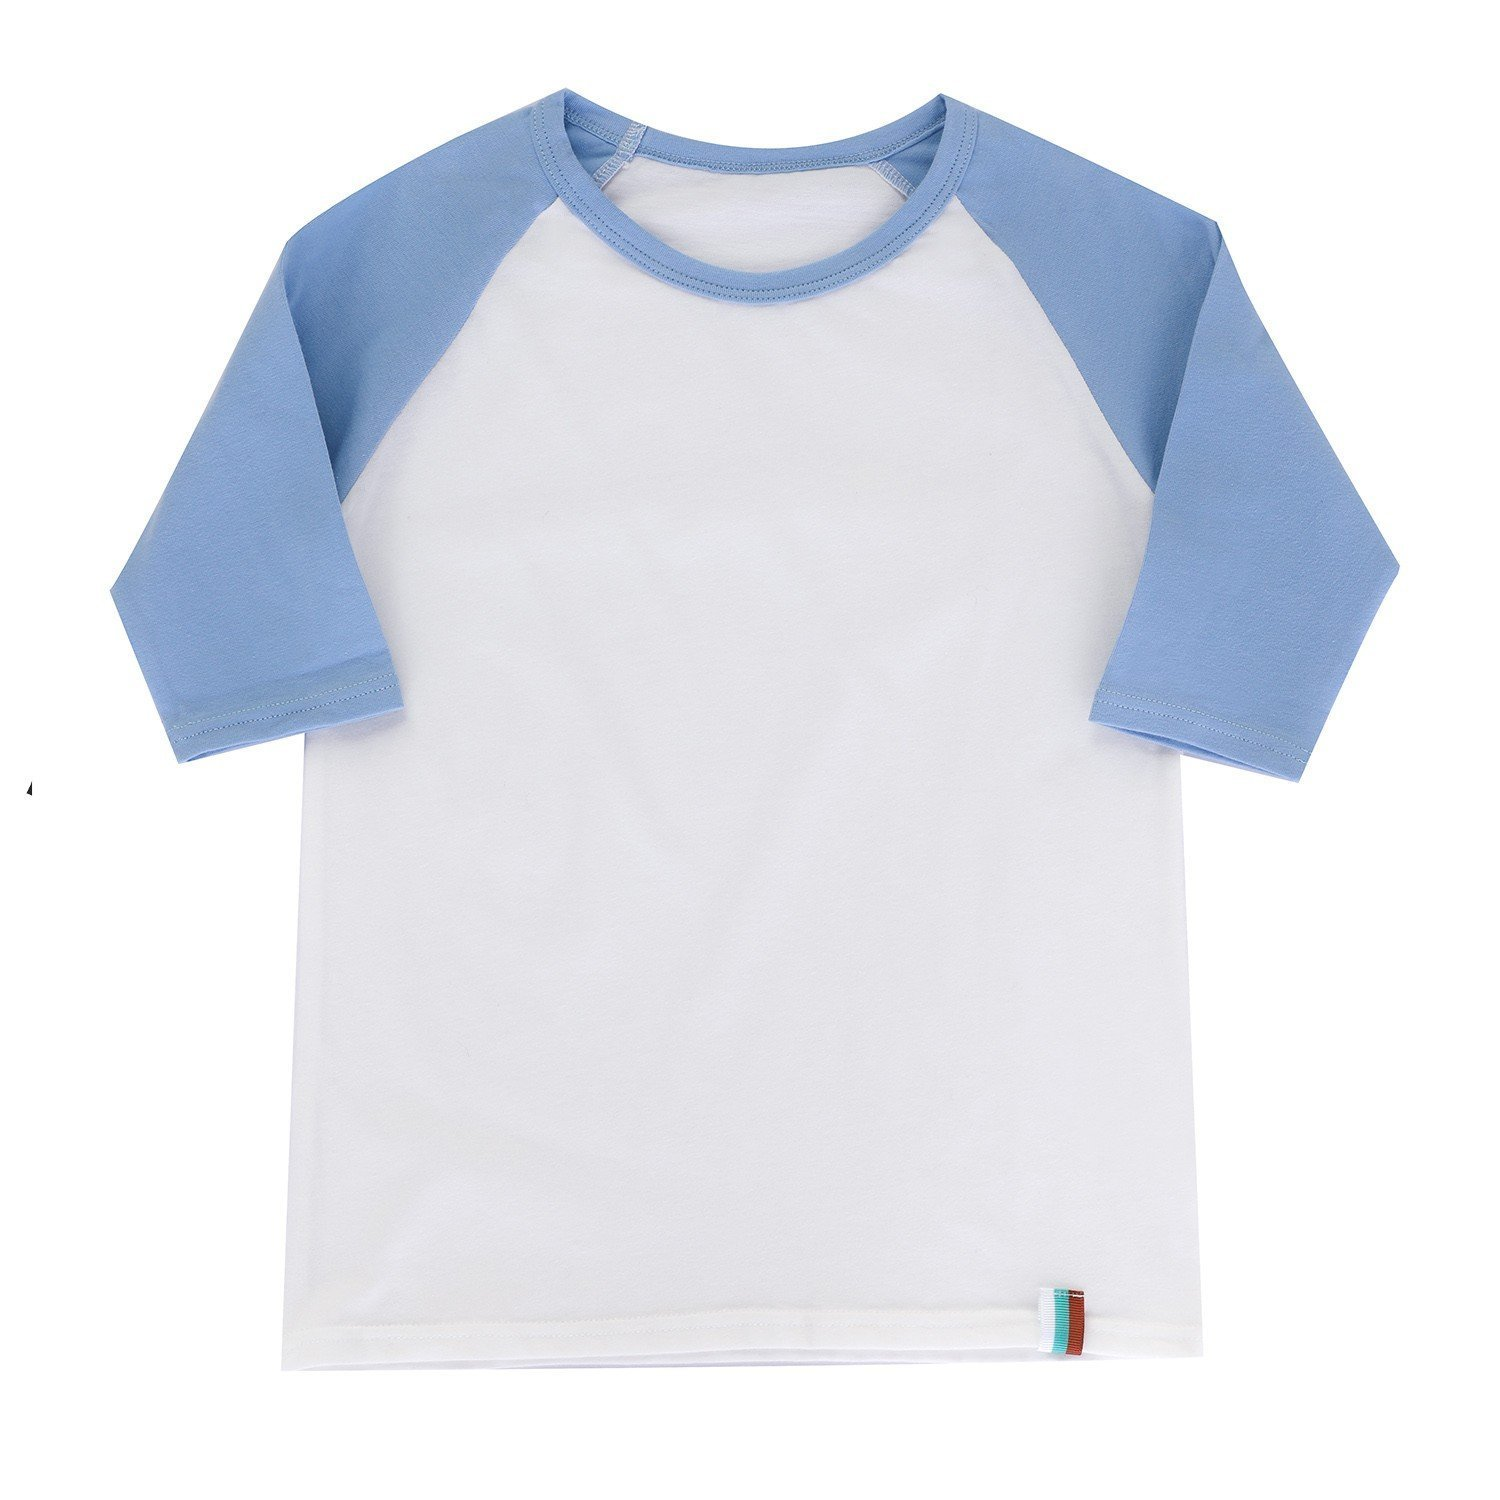 BesserBay Toddler Baseball Jersey Contrast 3/4 Sleeves Tee Raglan Soft T Shirts